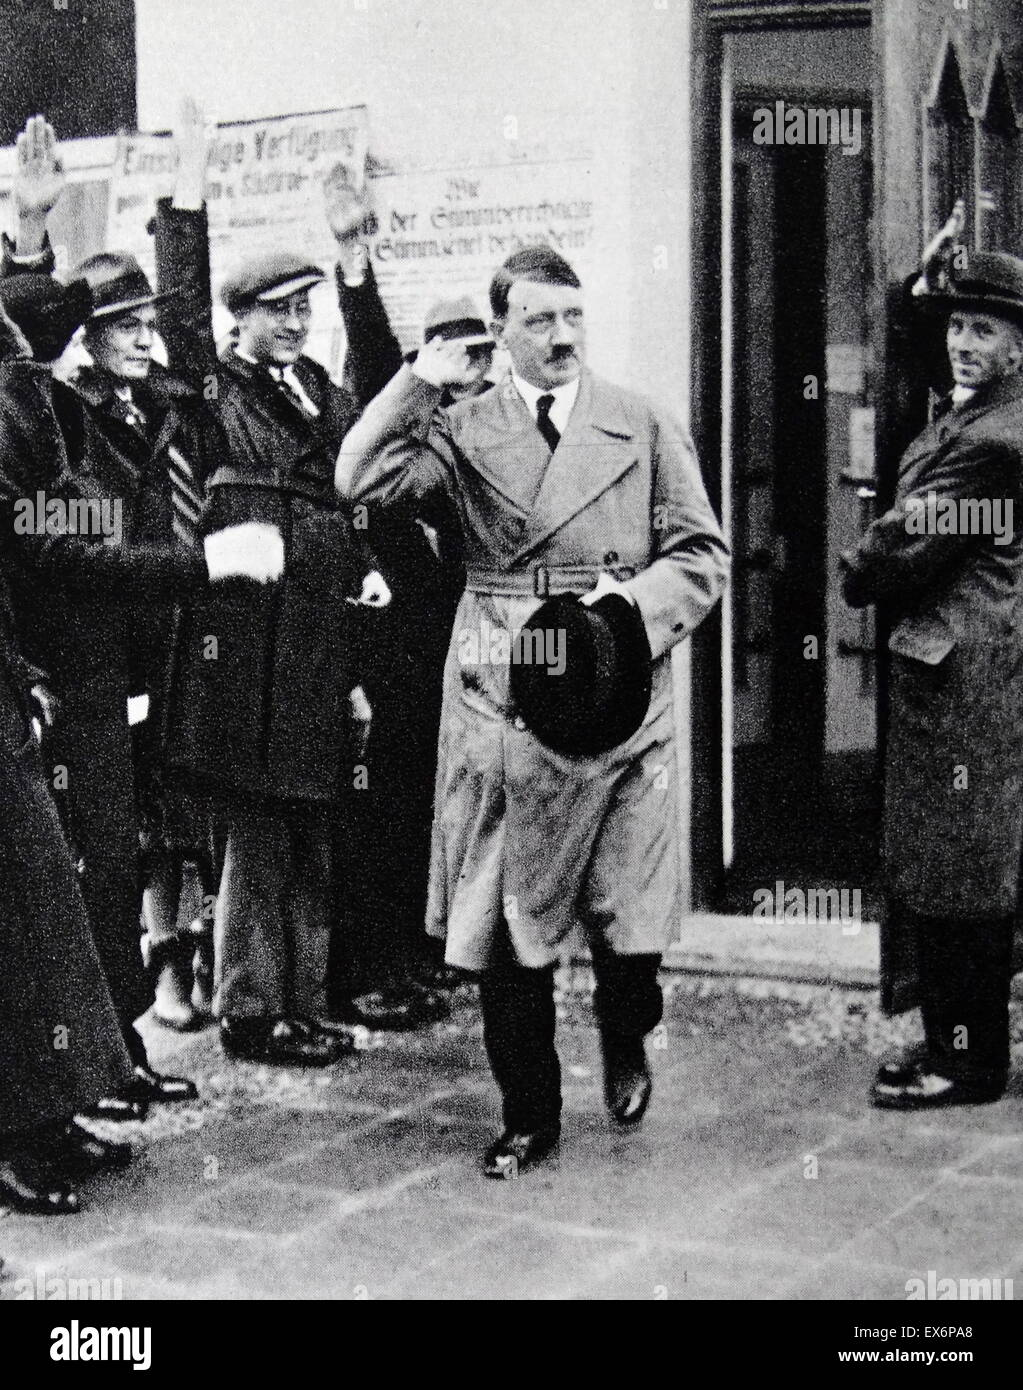 Adolf Hitler greeted by supporters, Berlin 1933 Stock Photo